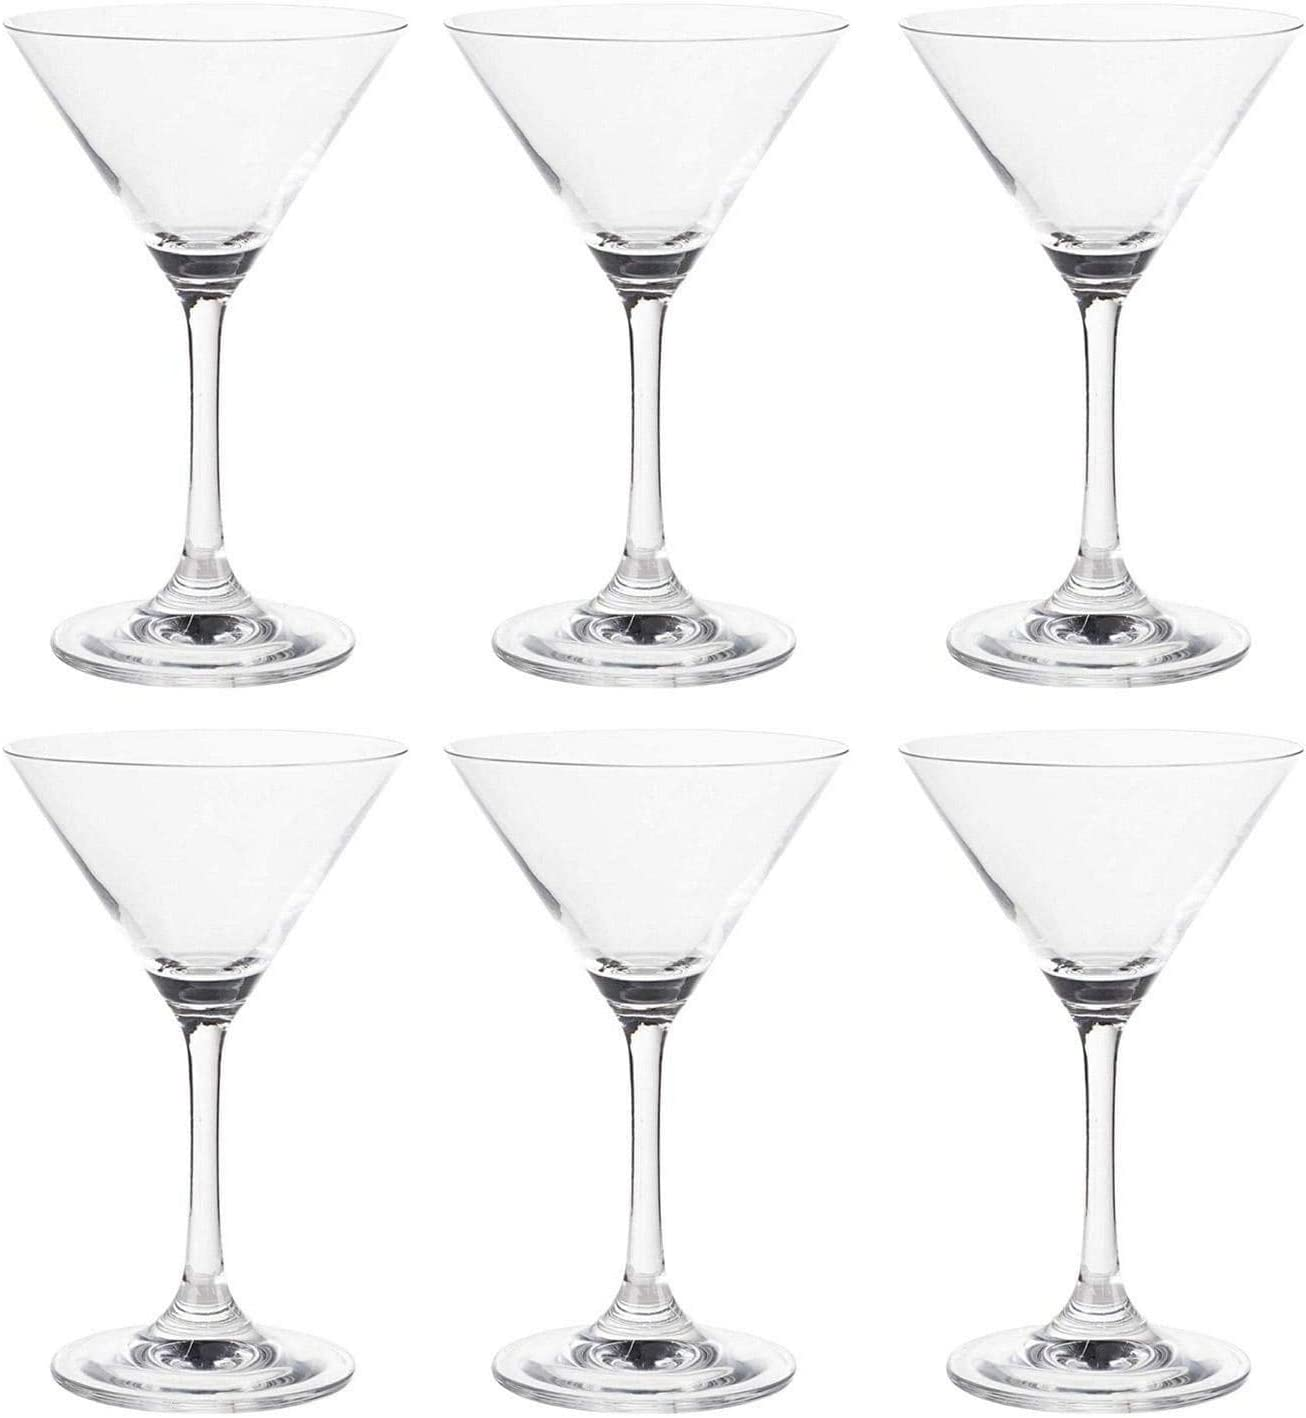 MISC Martini Glasses - Max 40% San Francisco Mall OFF 6-Set 5-Ounce Classic Clear Inve Cocktail